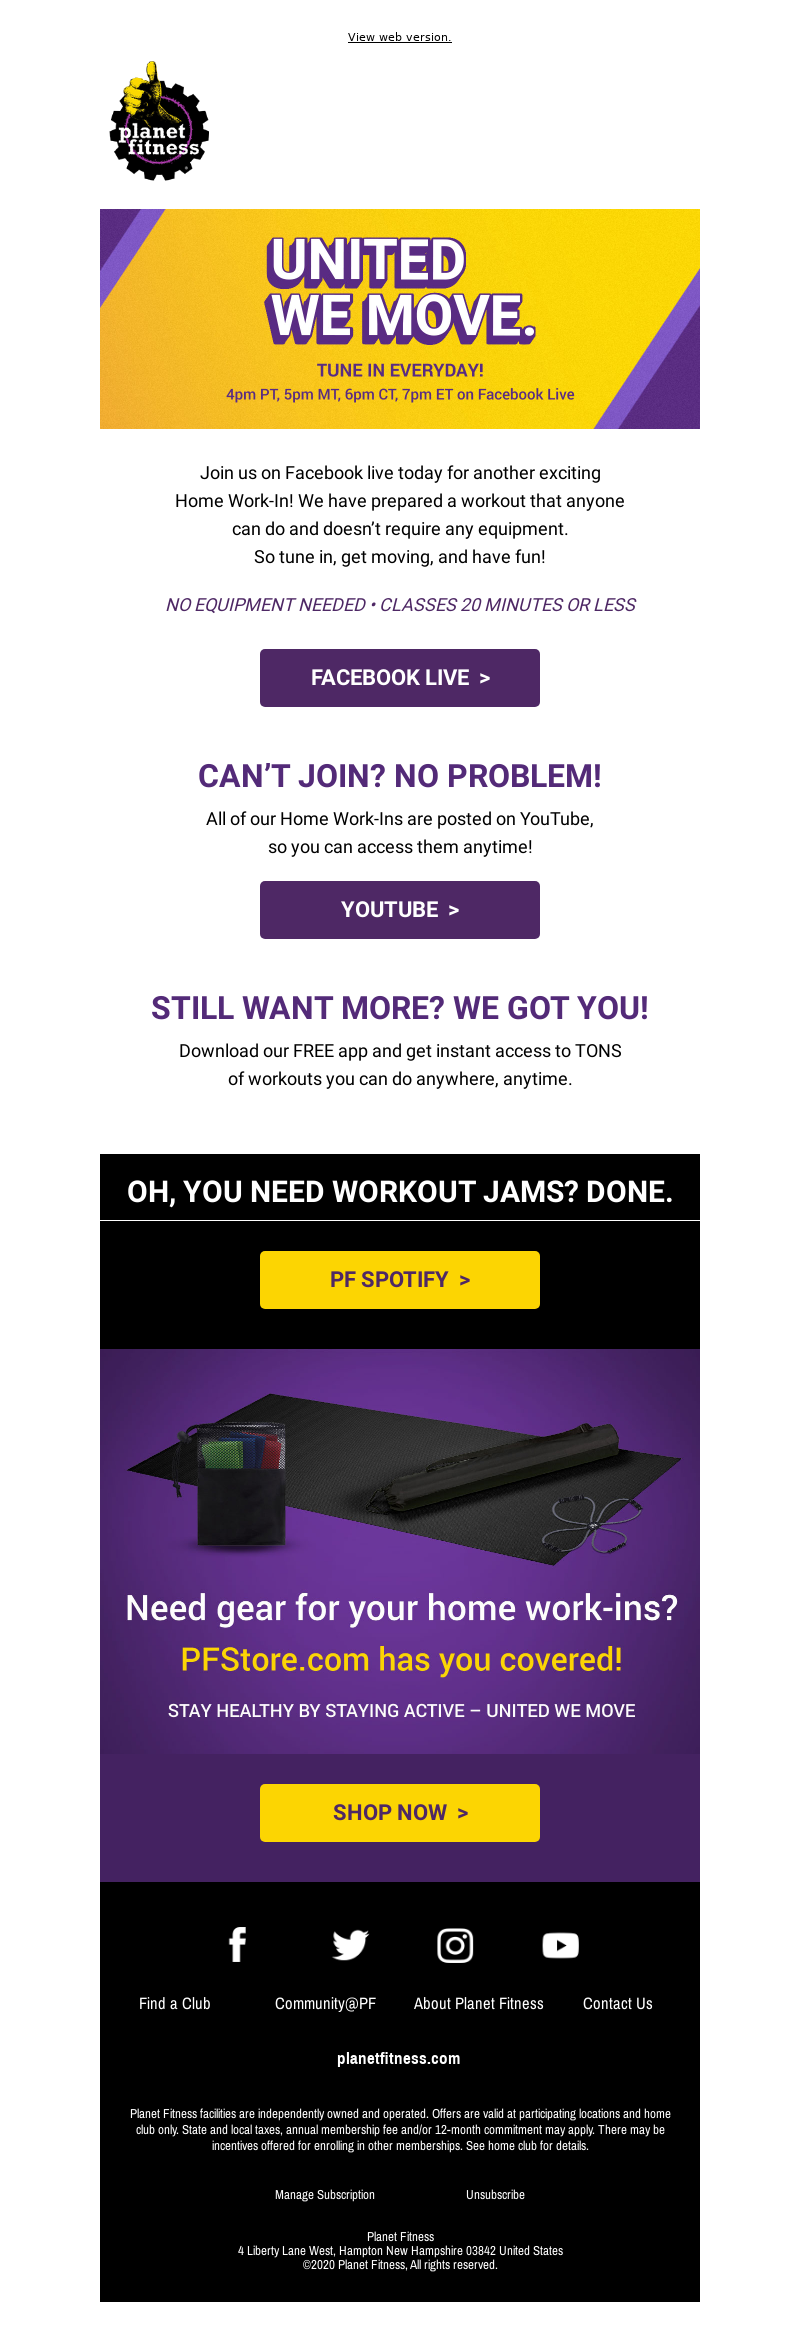 Planet Fitness - United We Move! Join a new Home Work-In today.